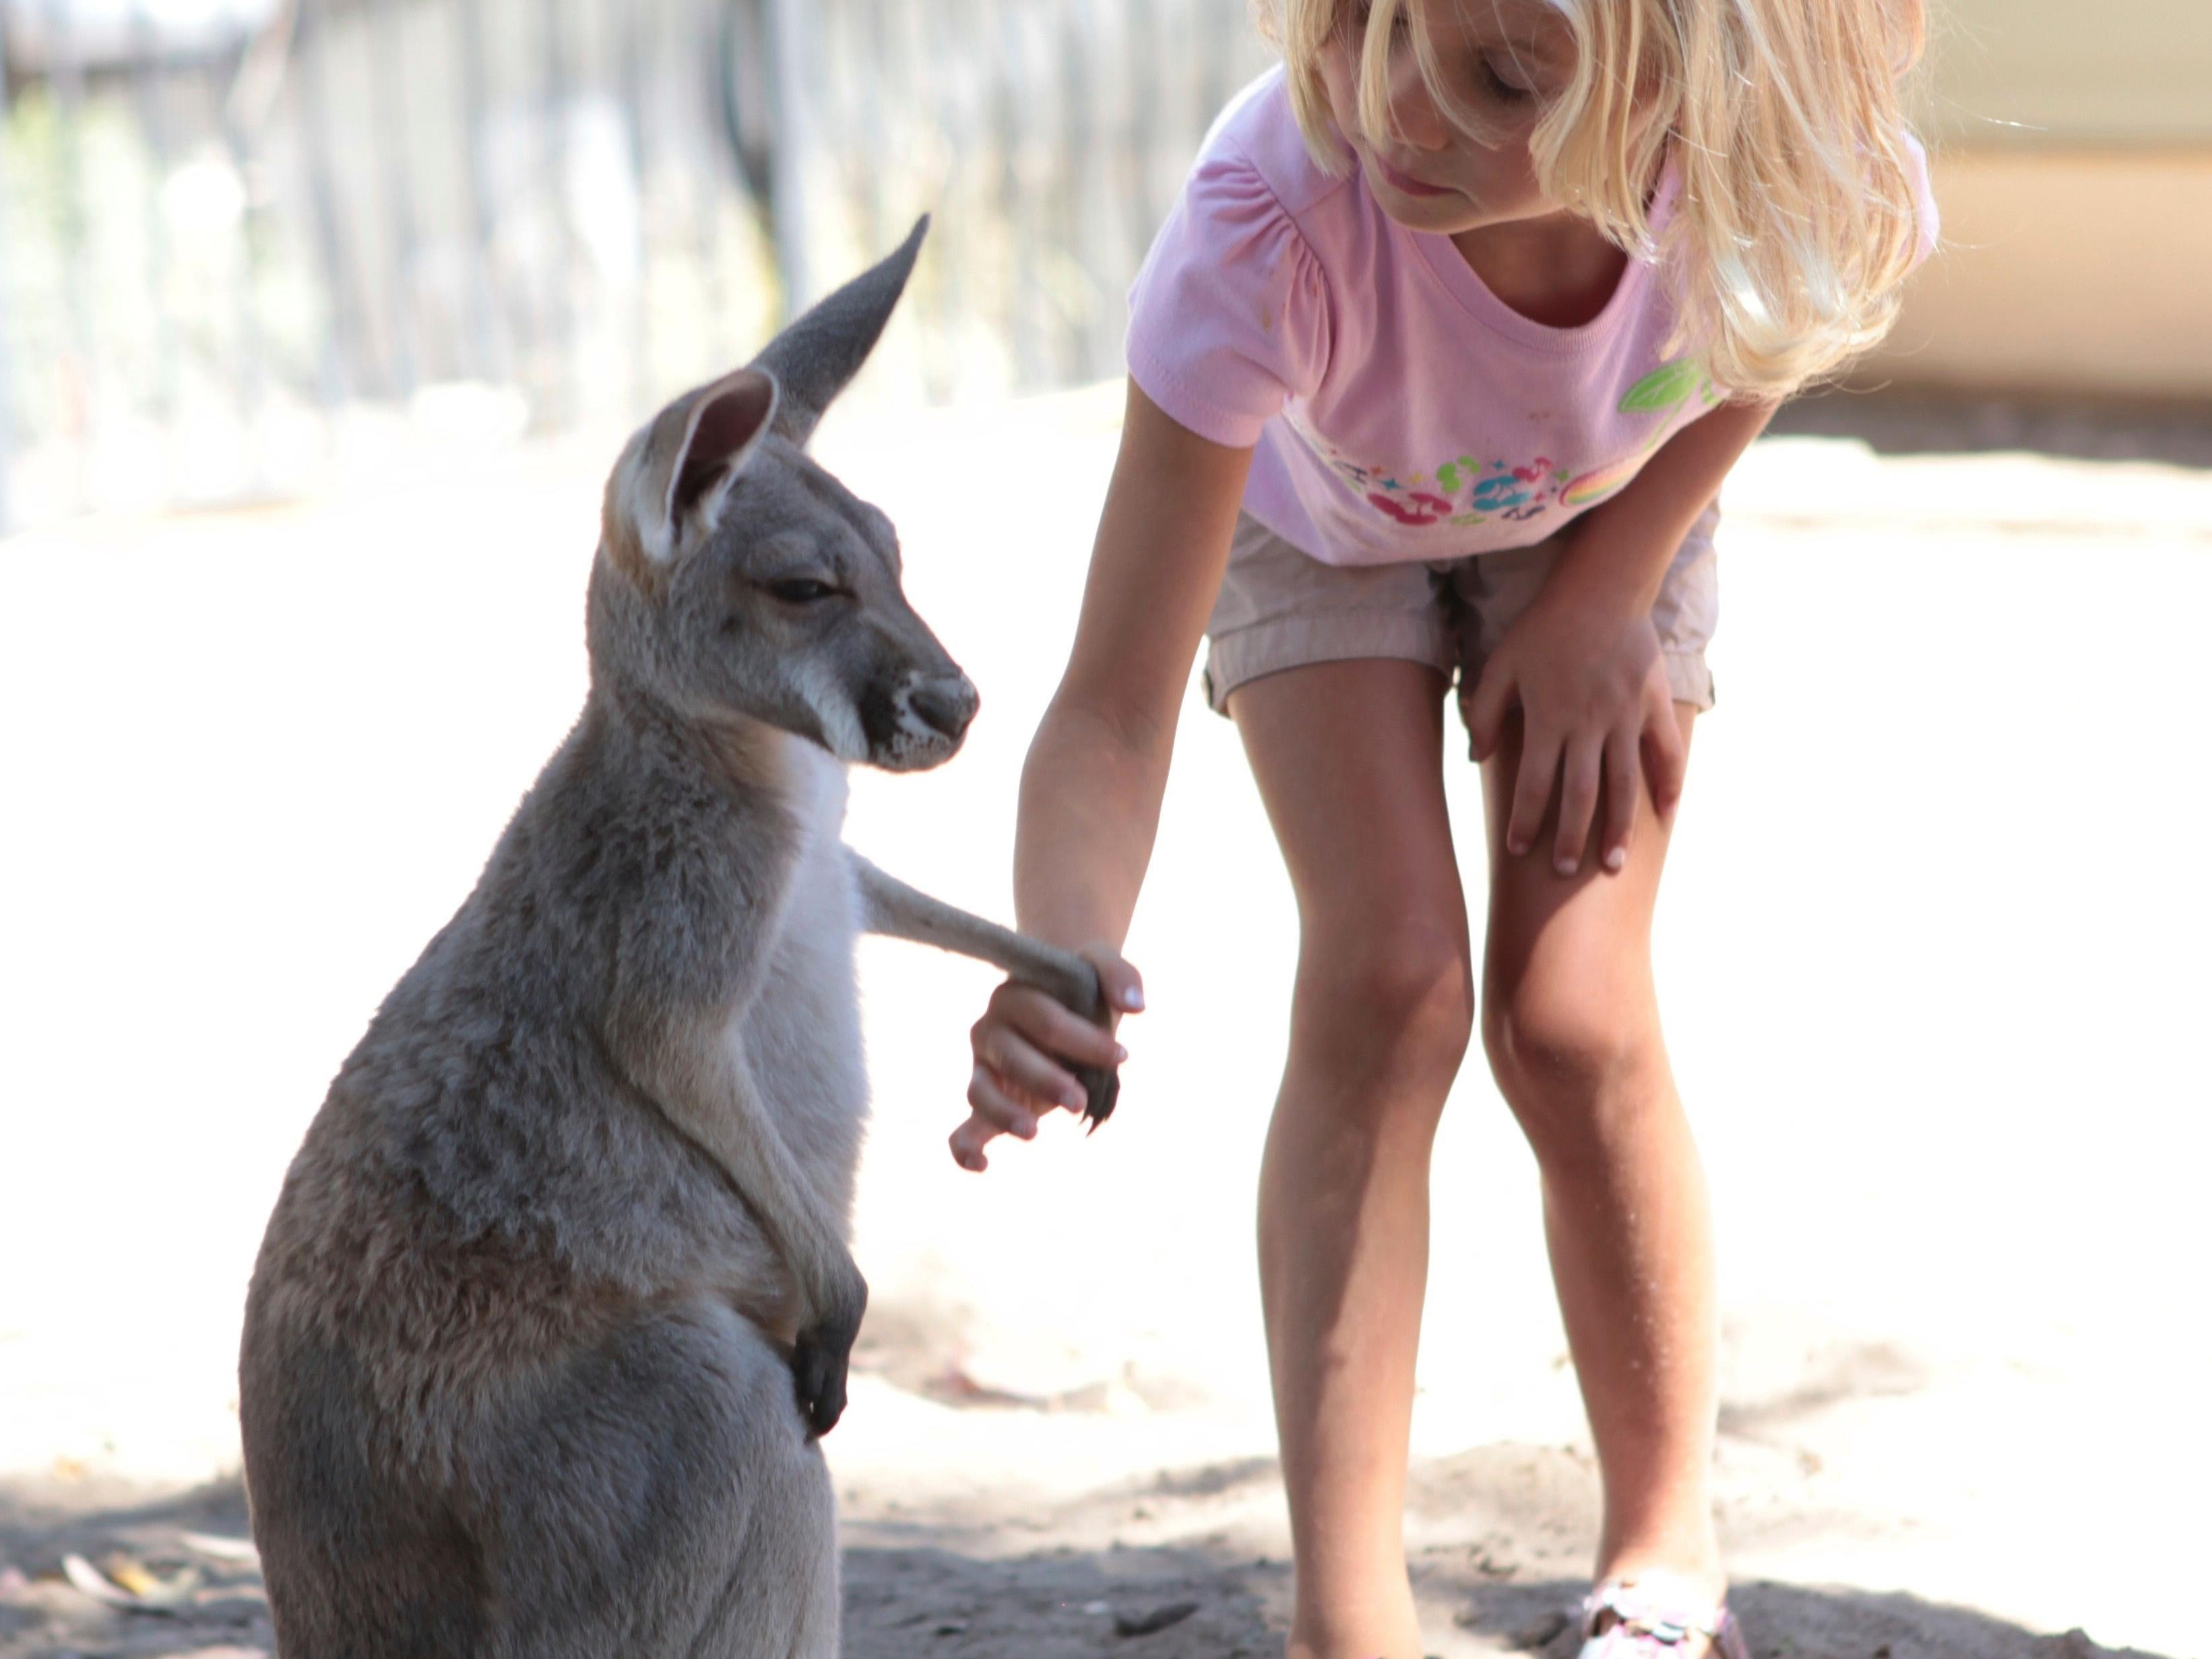 Child with Kangaroo